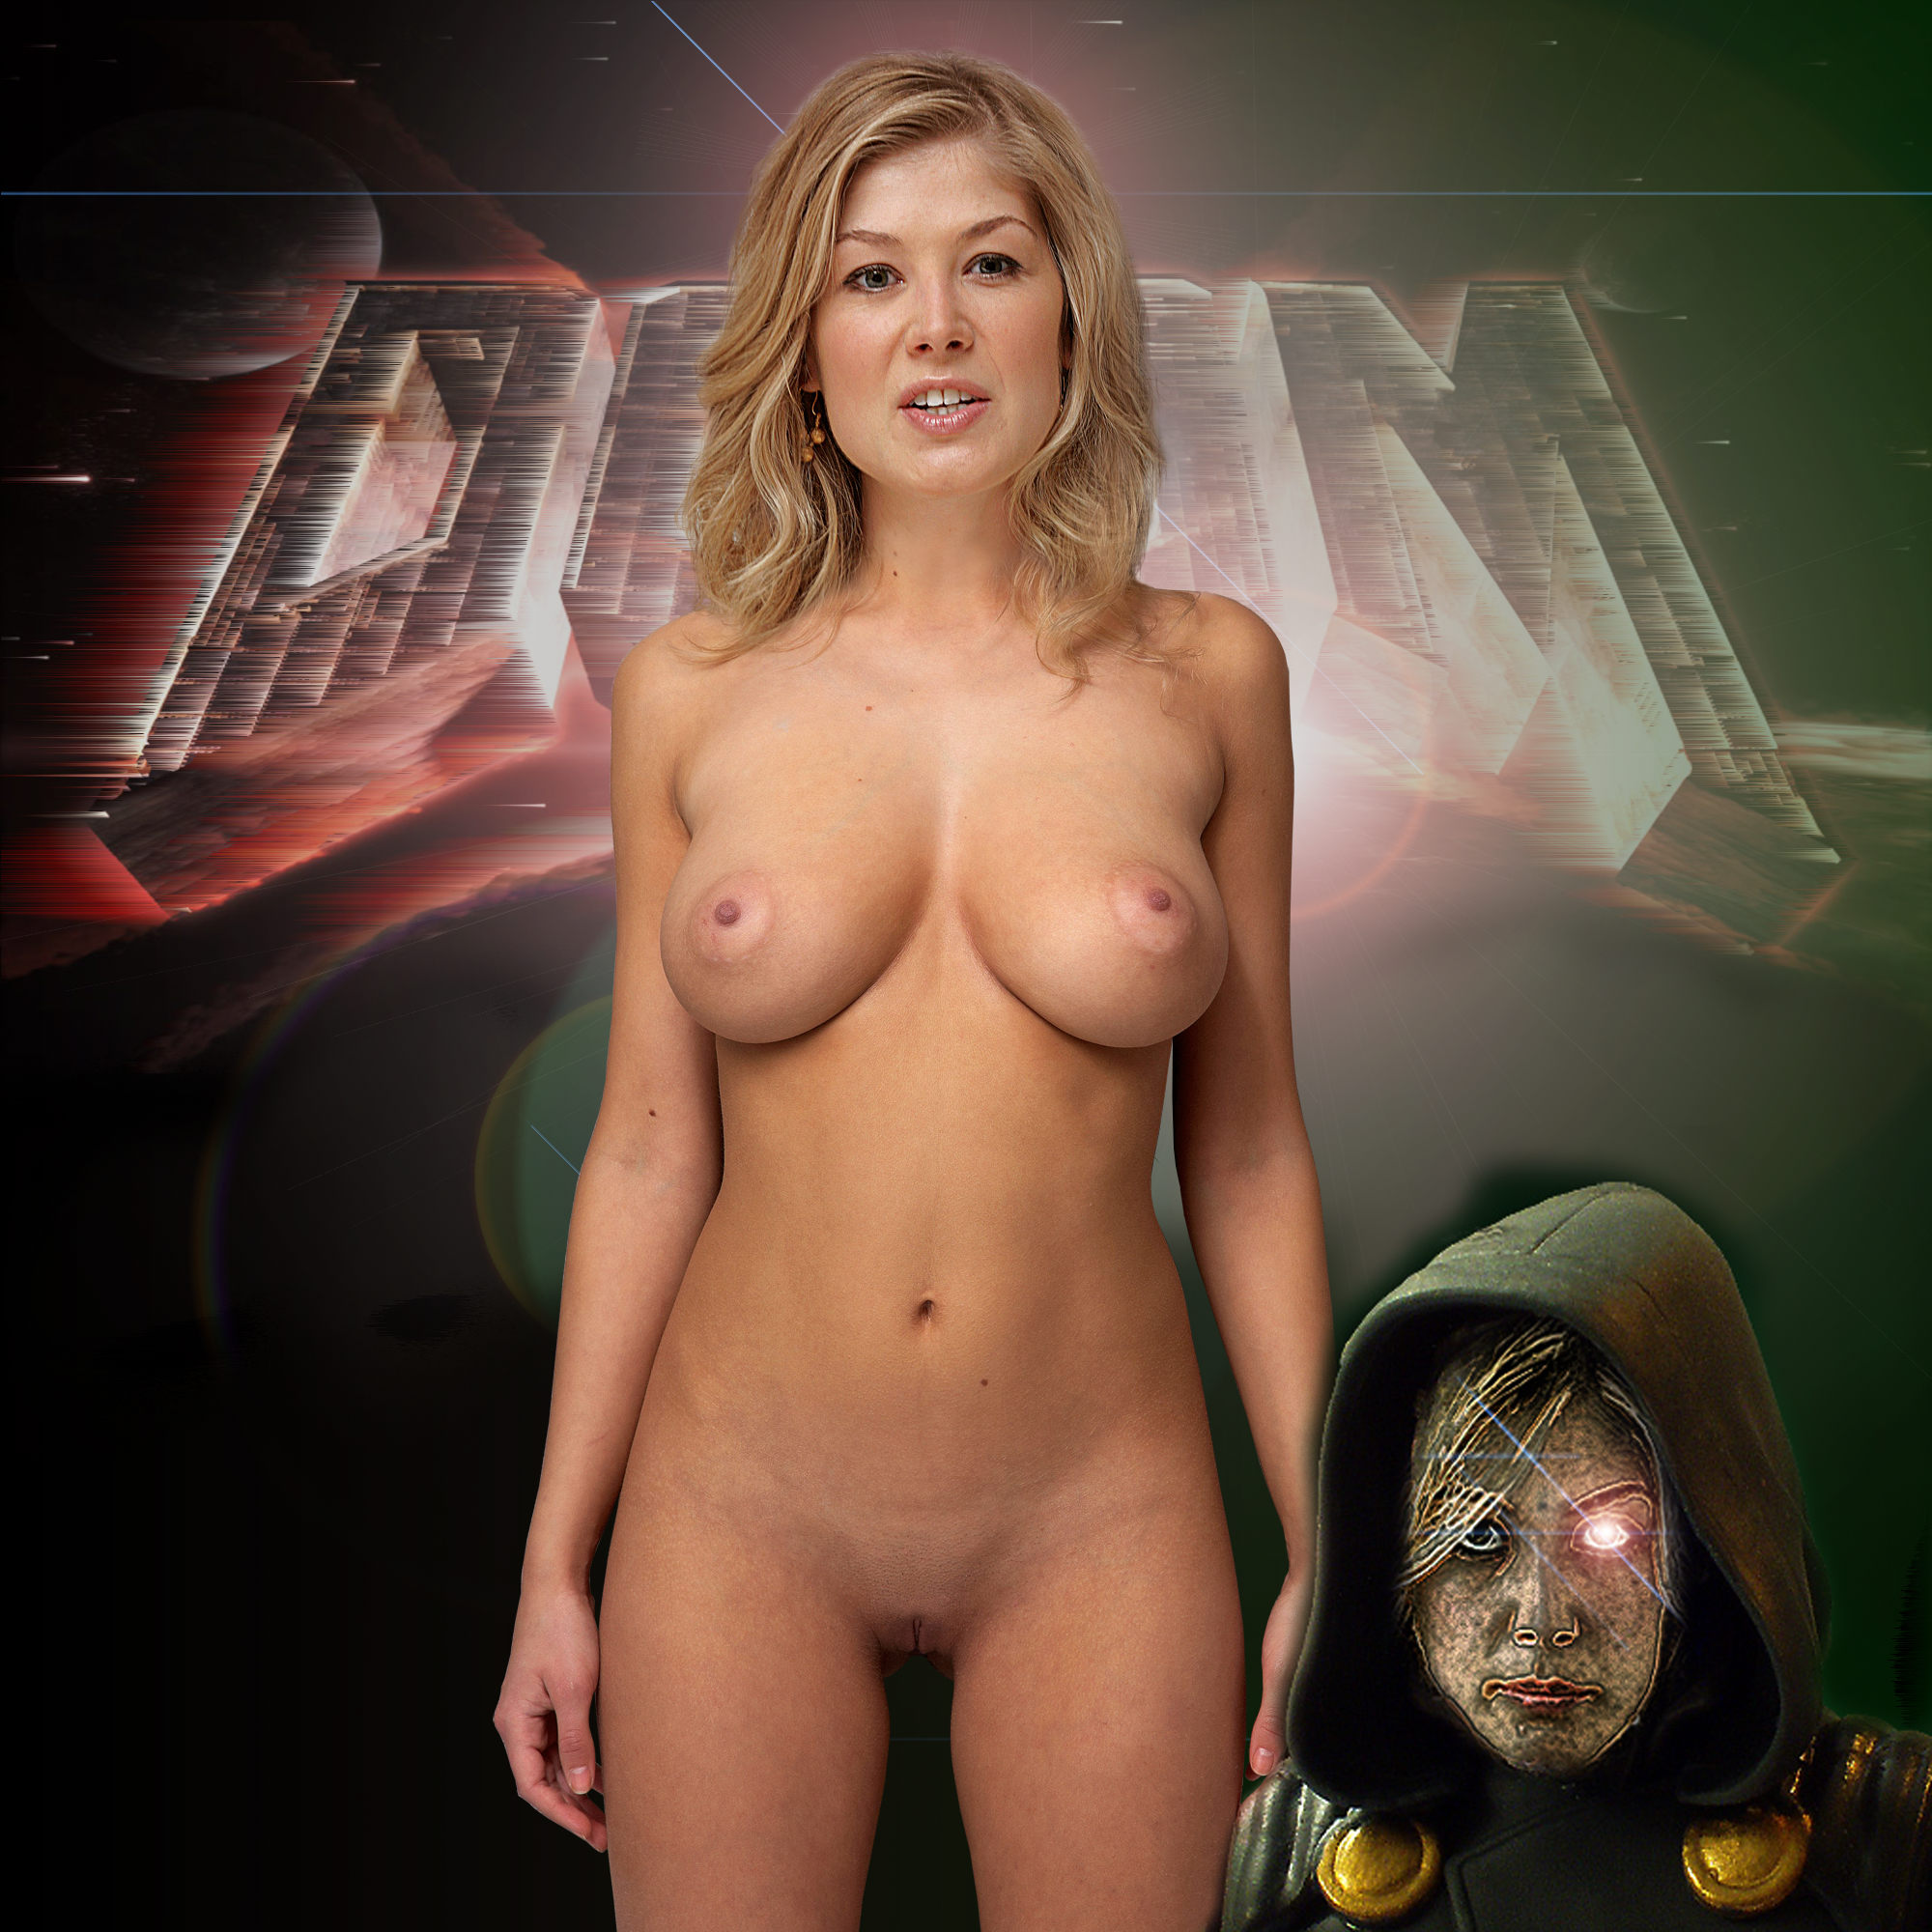 Cars and rosamund pike hot nude fuked bigboobs